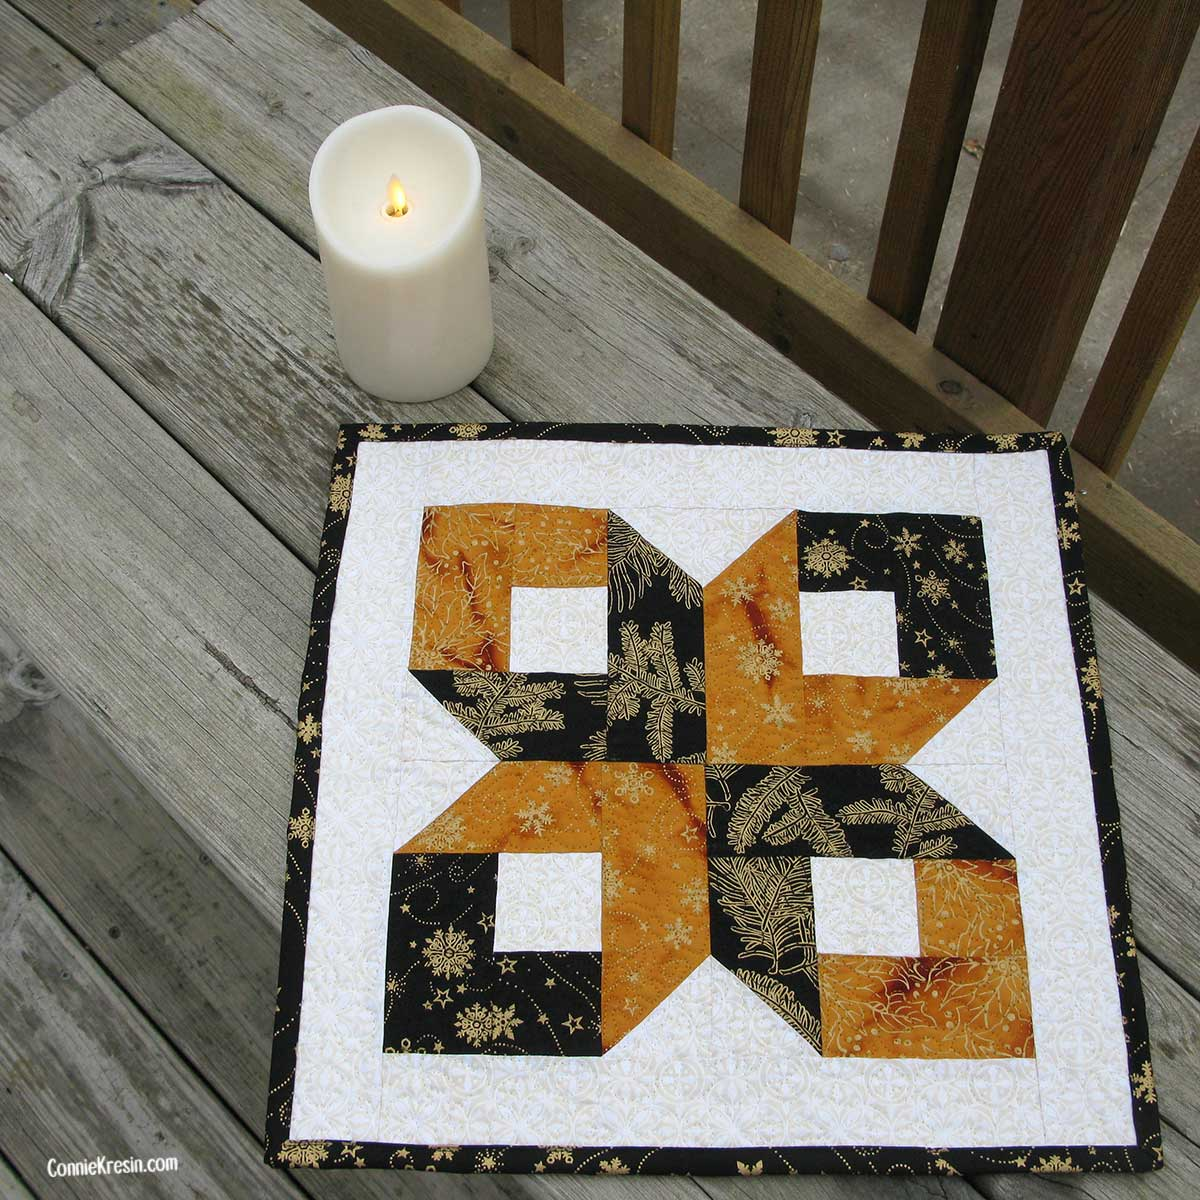 Silent Night Center piece made with the Box quilt block